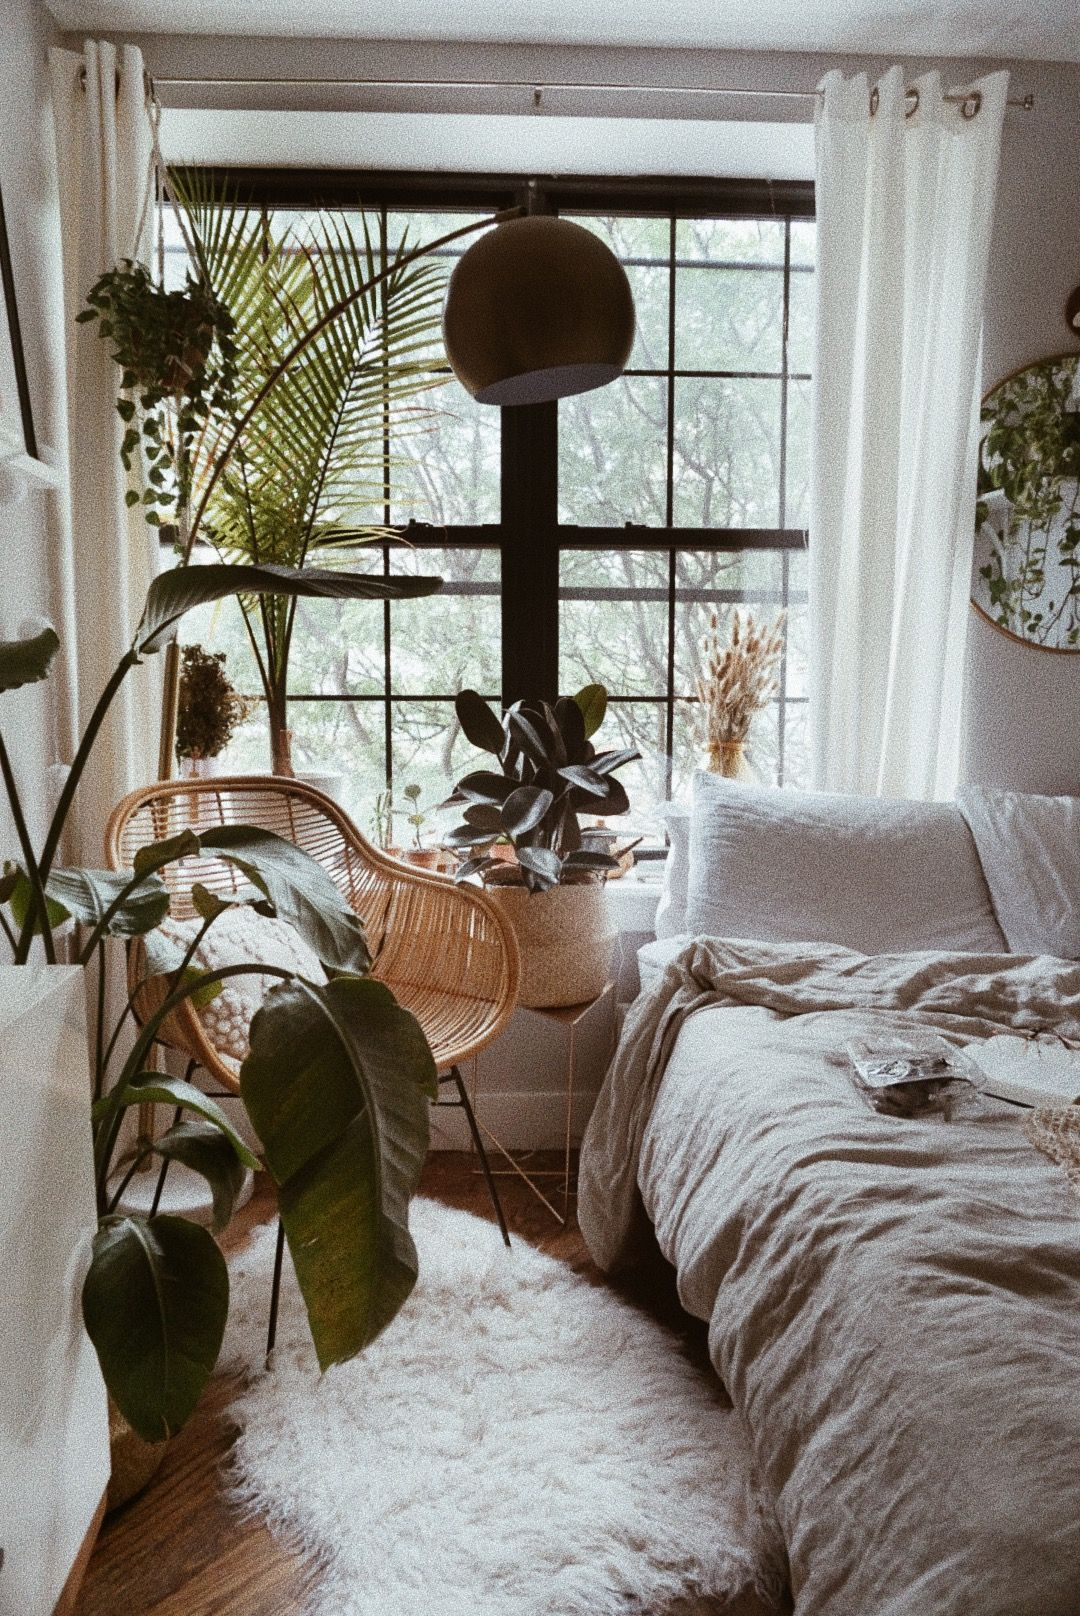 Minimalist Boho Bedroom Decor  Boho bedroom decor, Boho bedroom